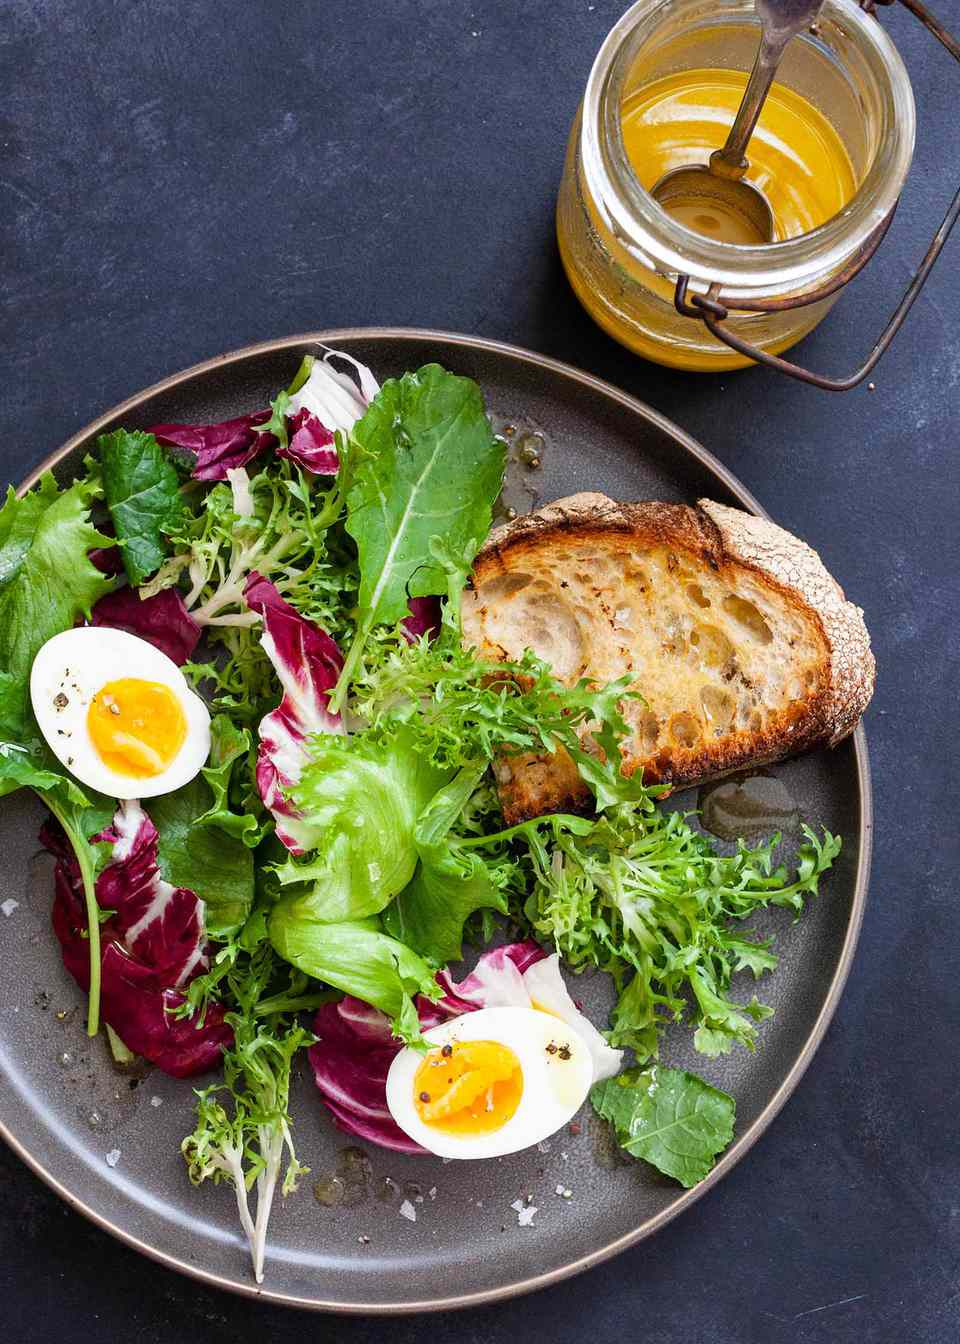 Side Salad with Eggs -- salad greens with hard boiled eggs and toast